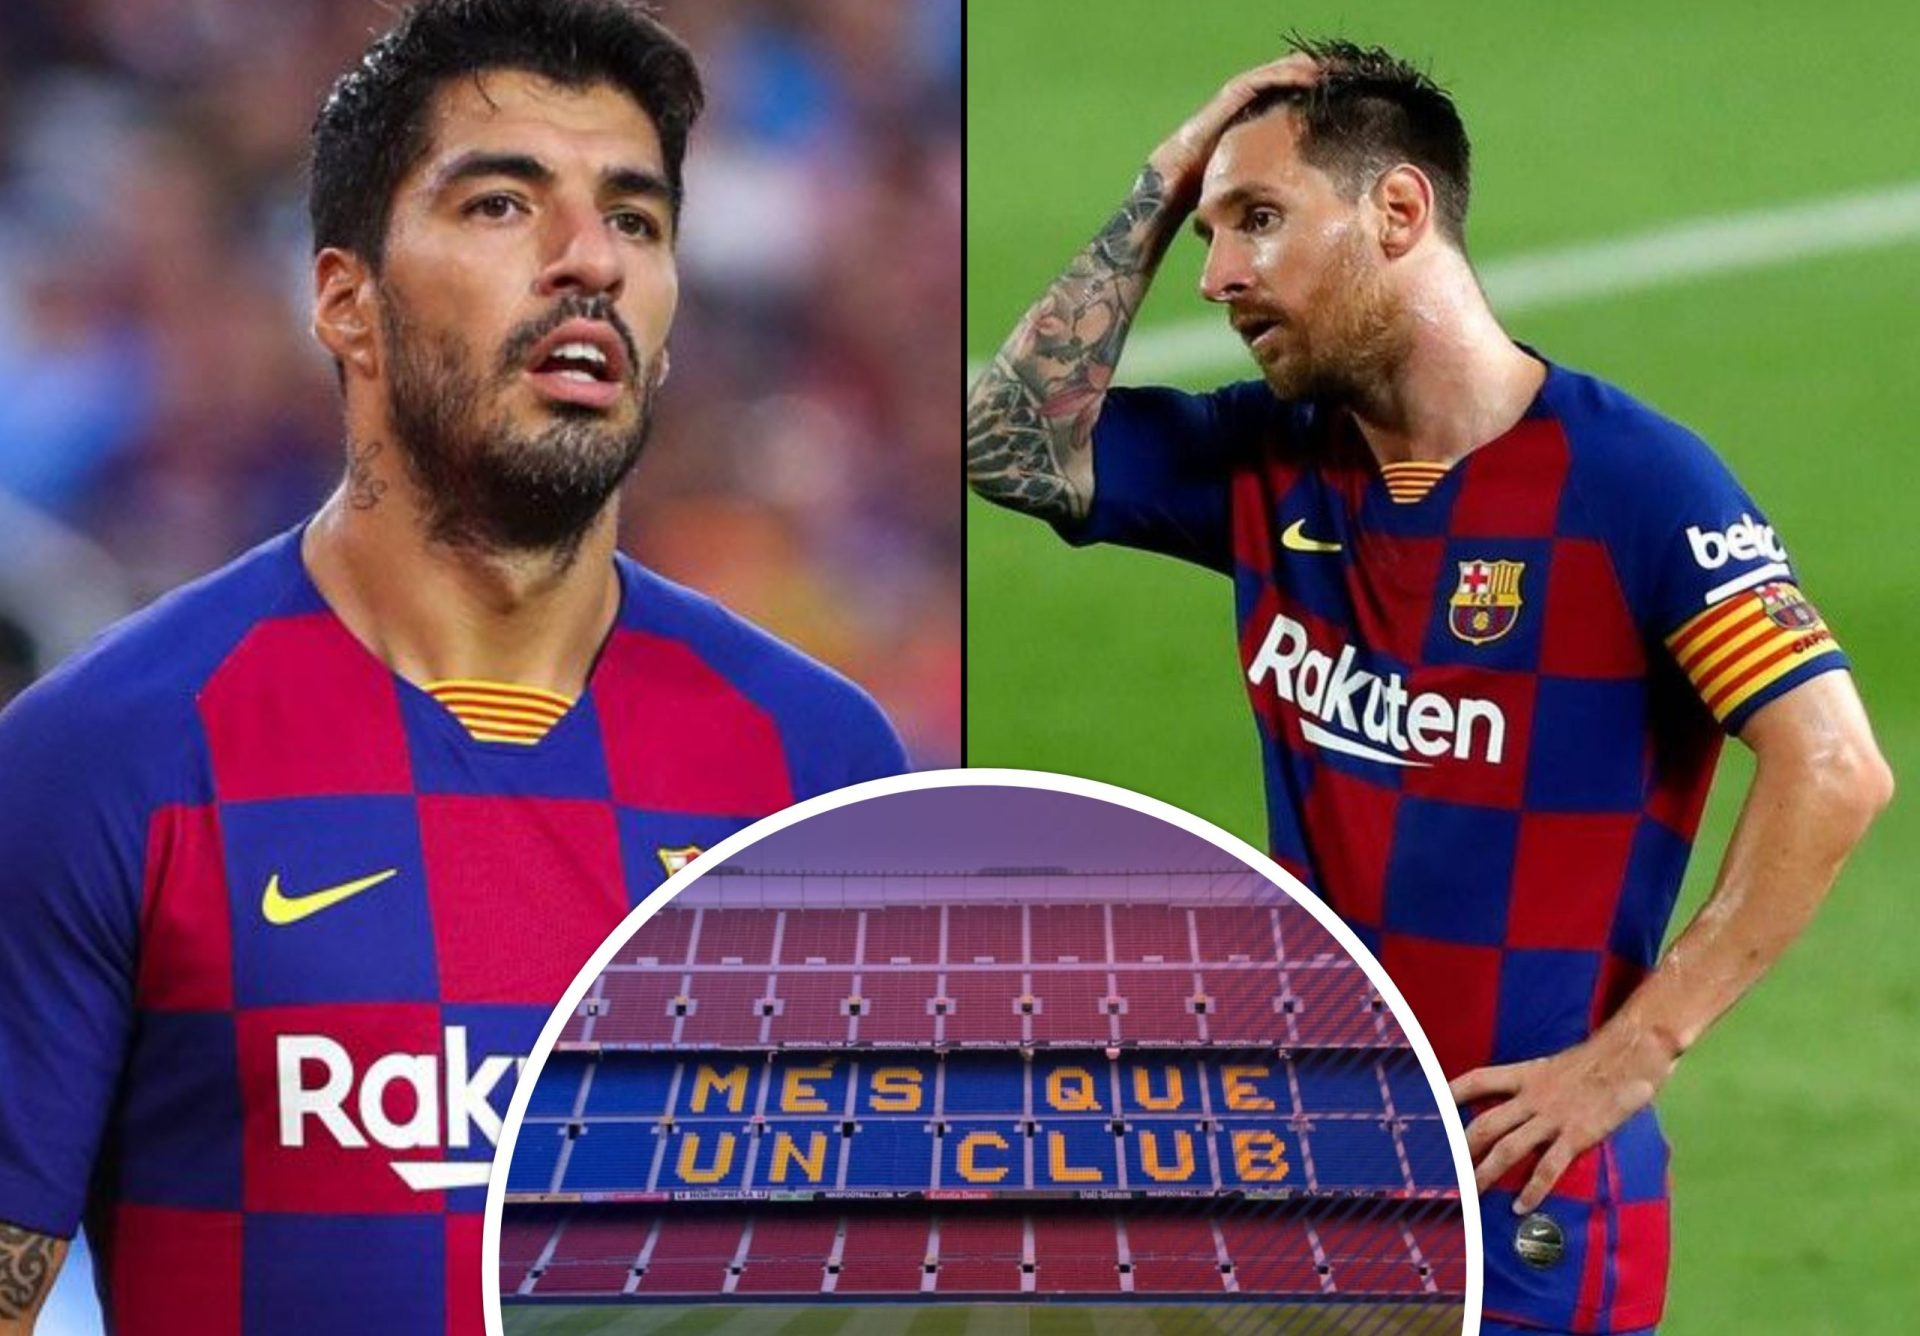 The pain, the tears and the departure: Luis Suarez finally breaks silence on the entire saga at Barcelona - THE SPORTS ROOM